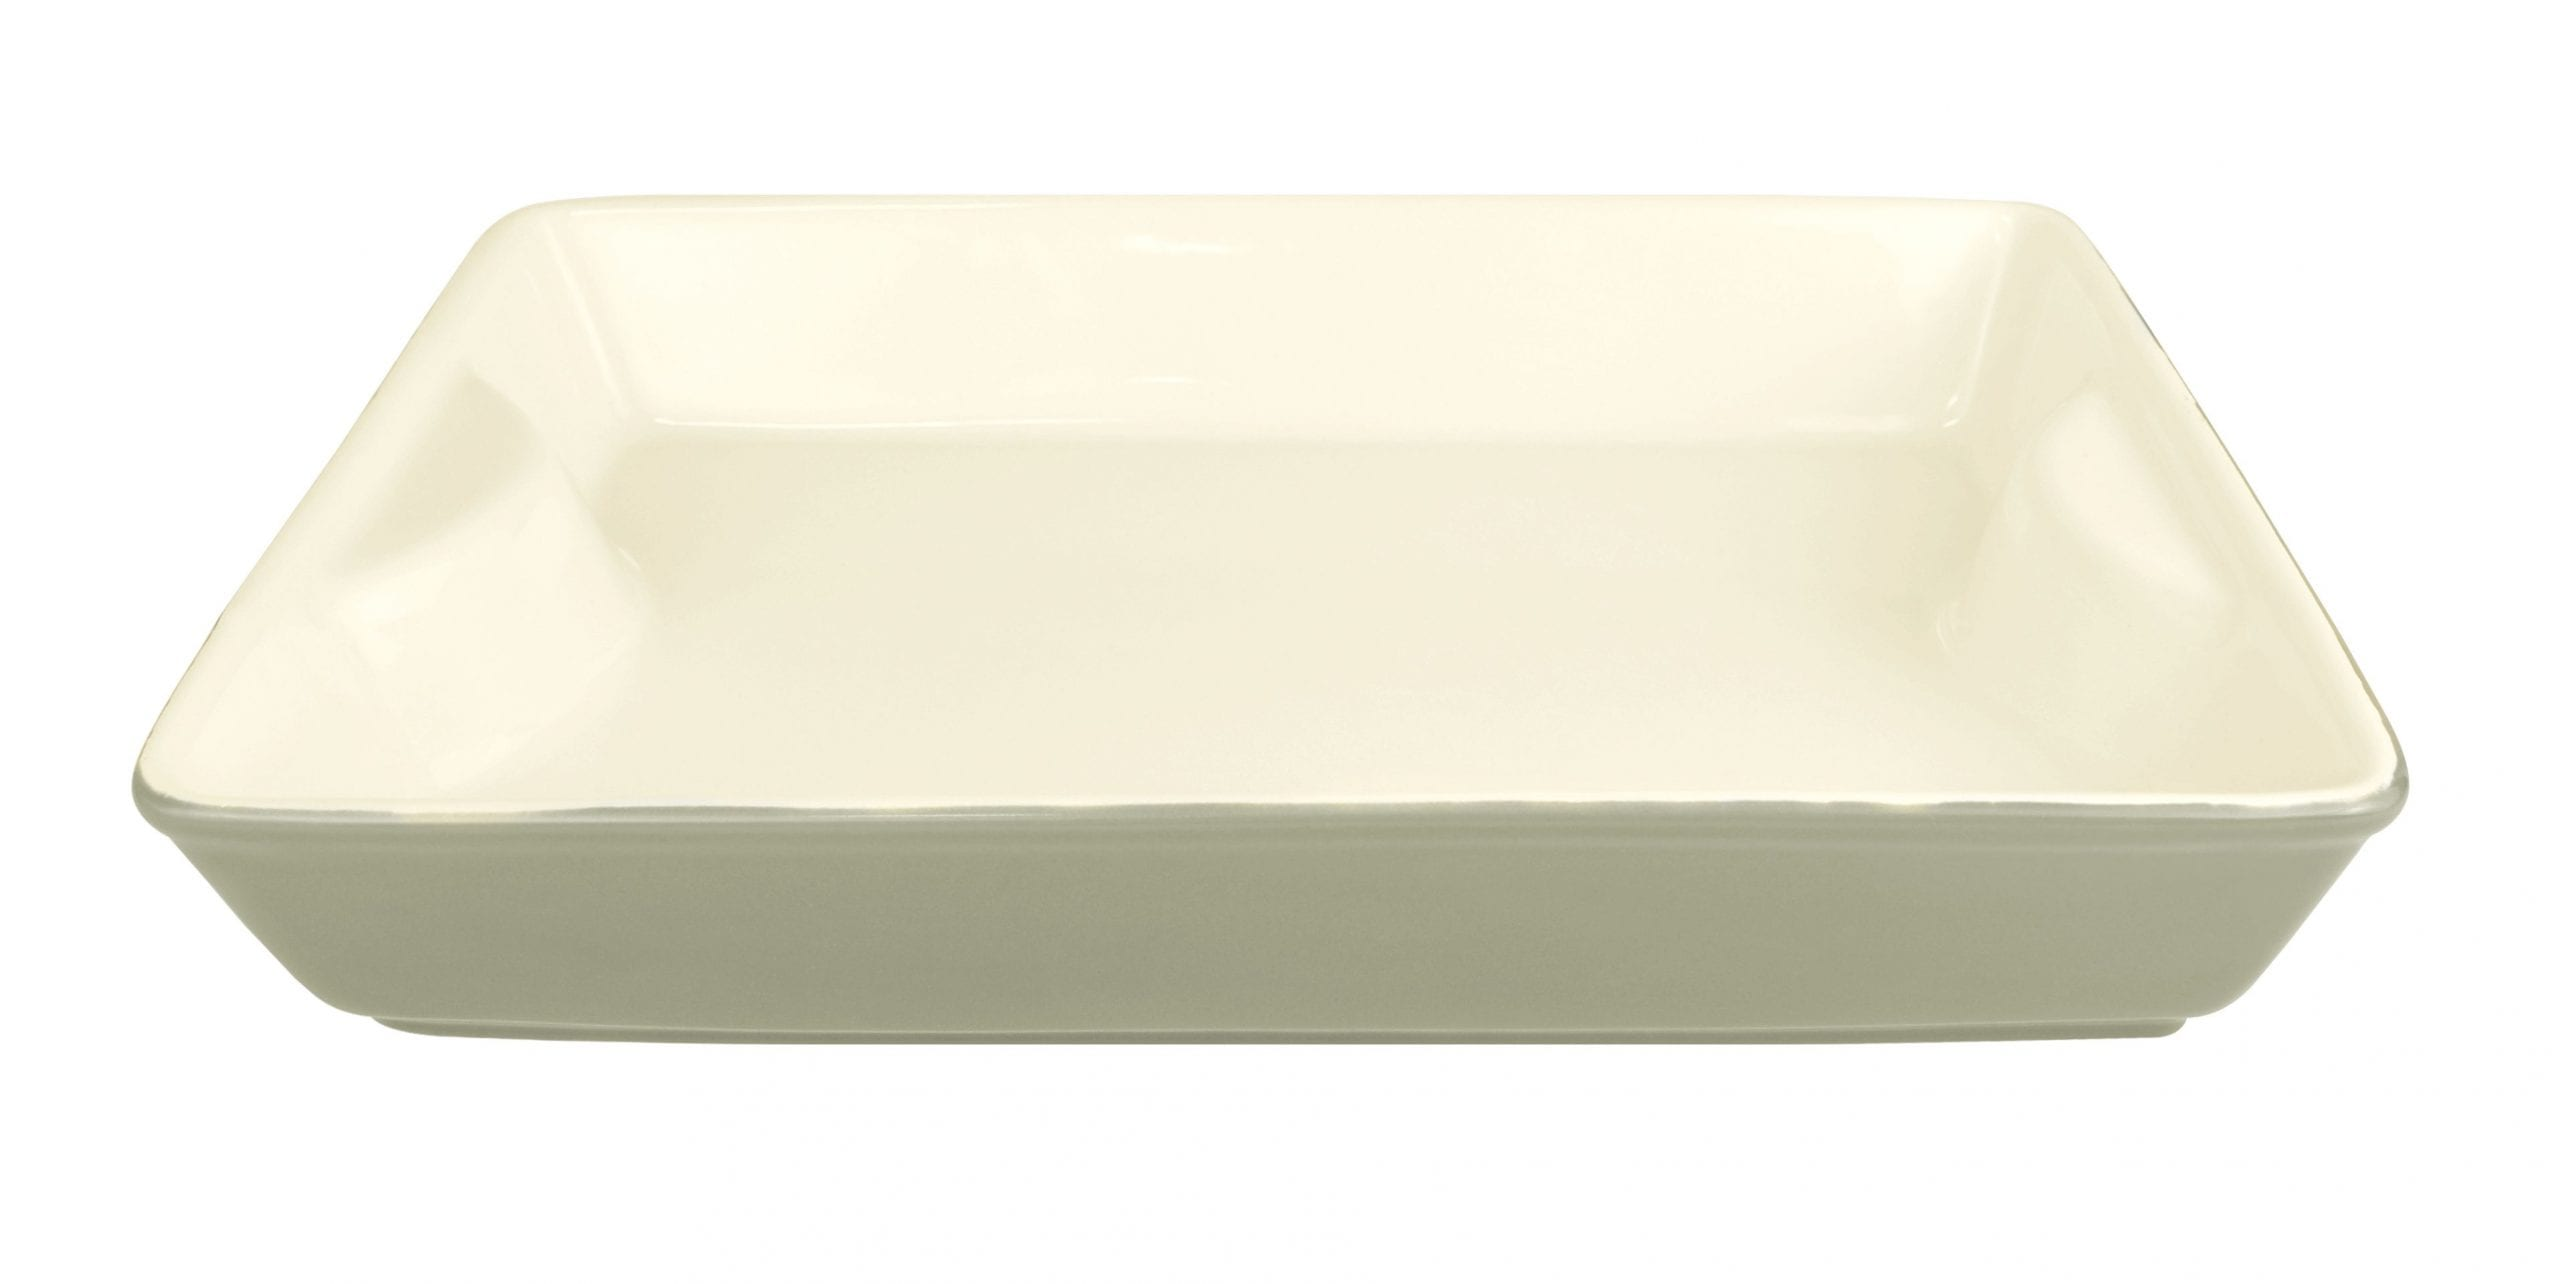 Le Regalo Stoneware Rectangular Baking Dish11 scaled